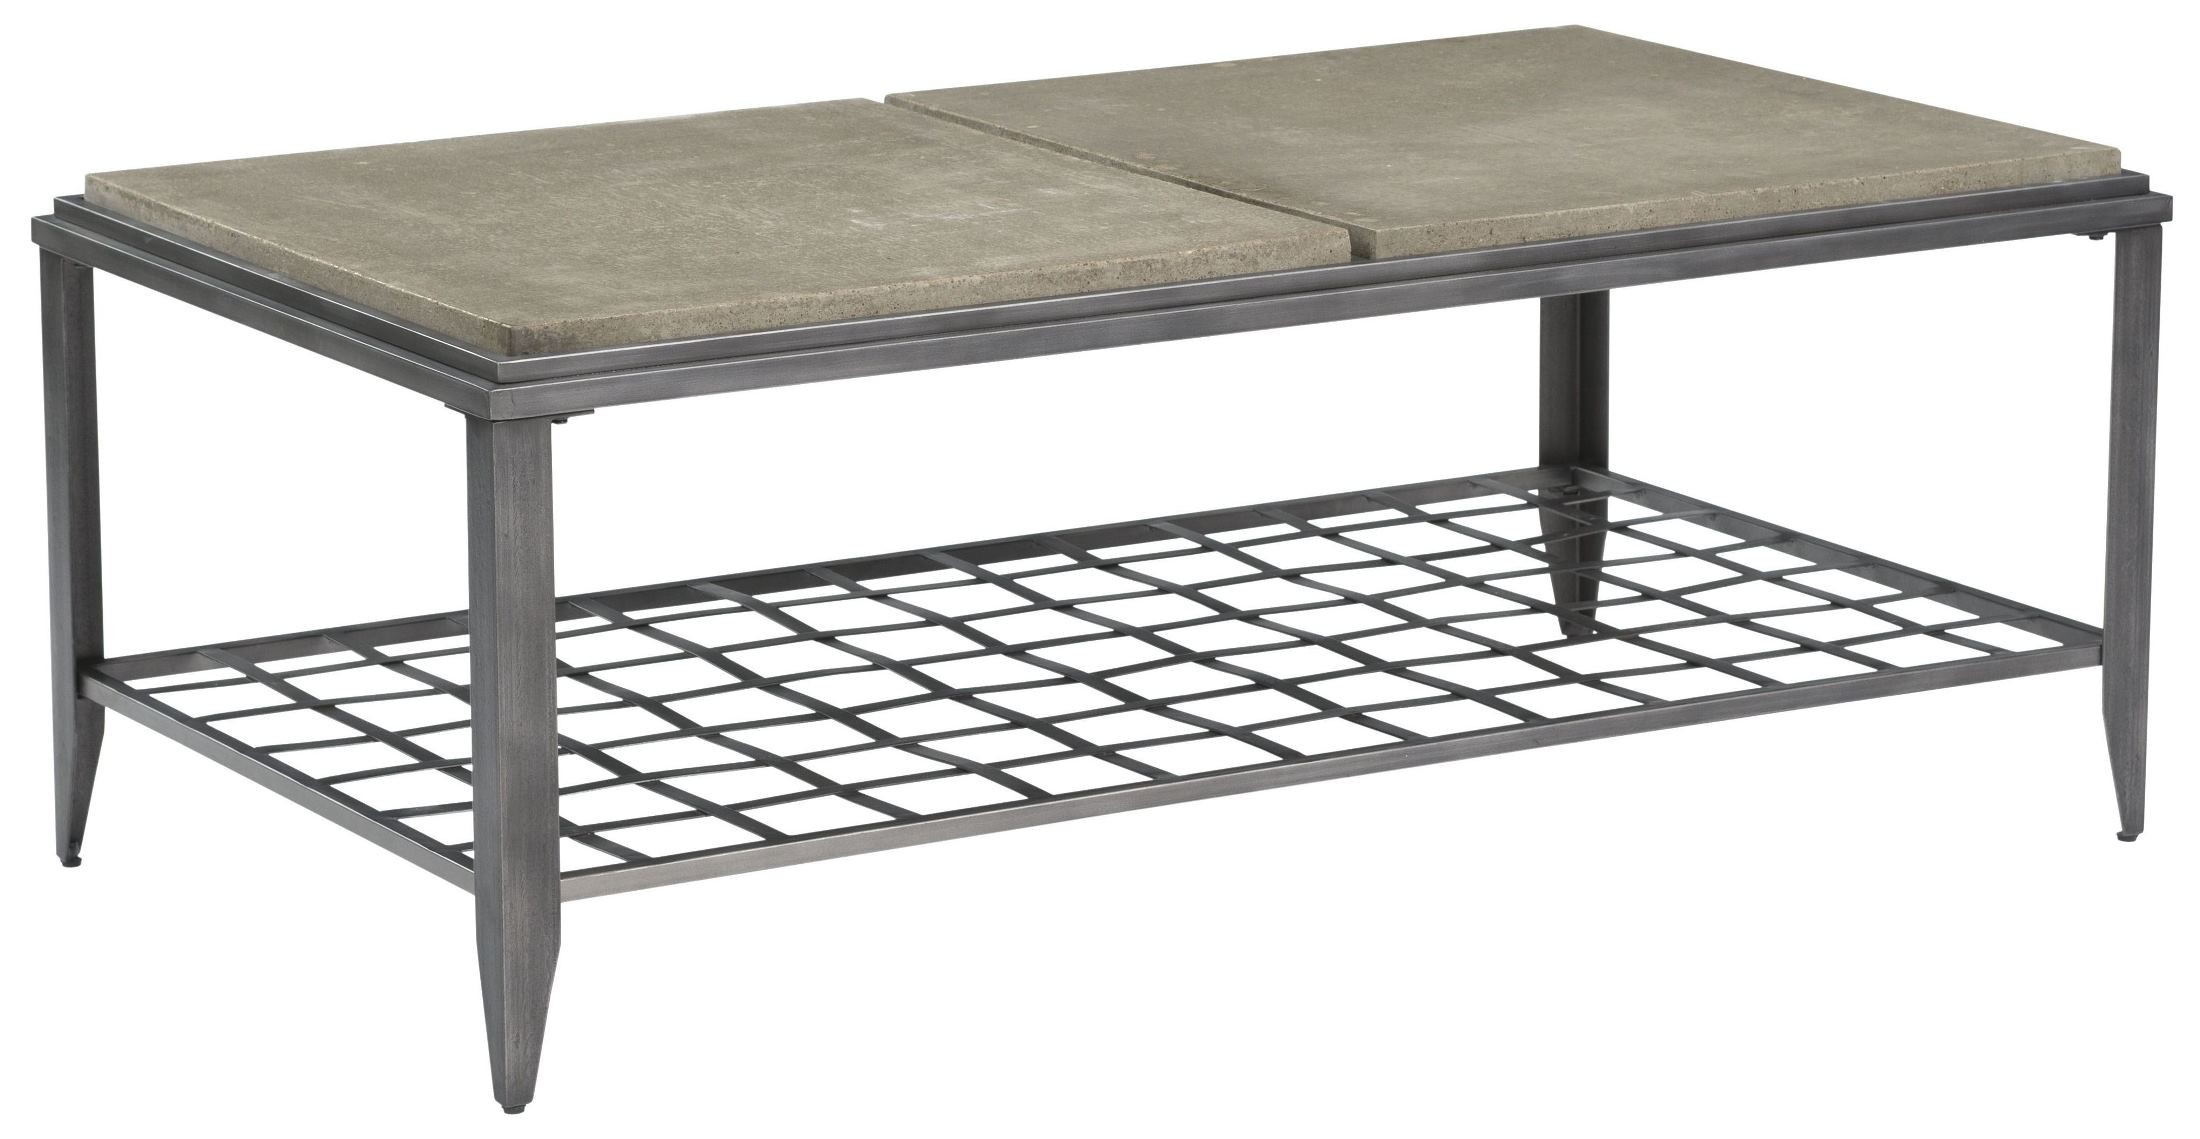 Modern classics grid rectangular cocktail table from for Modern classic table